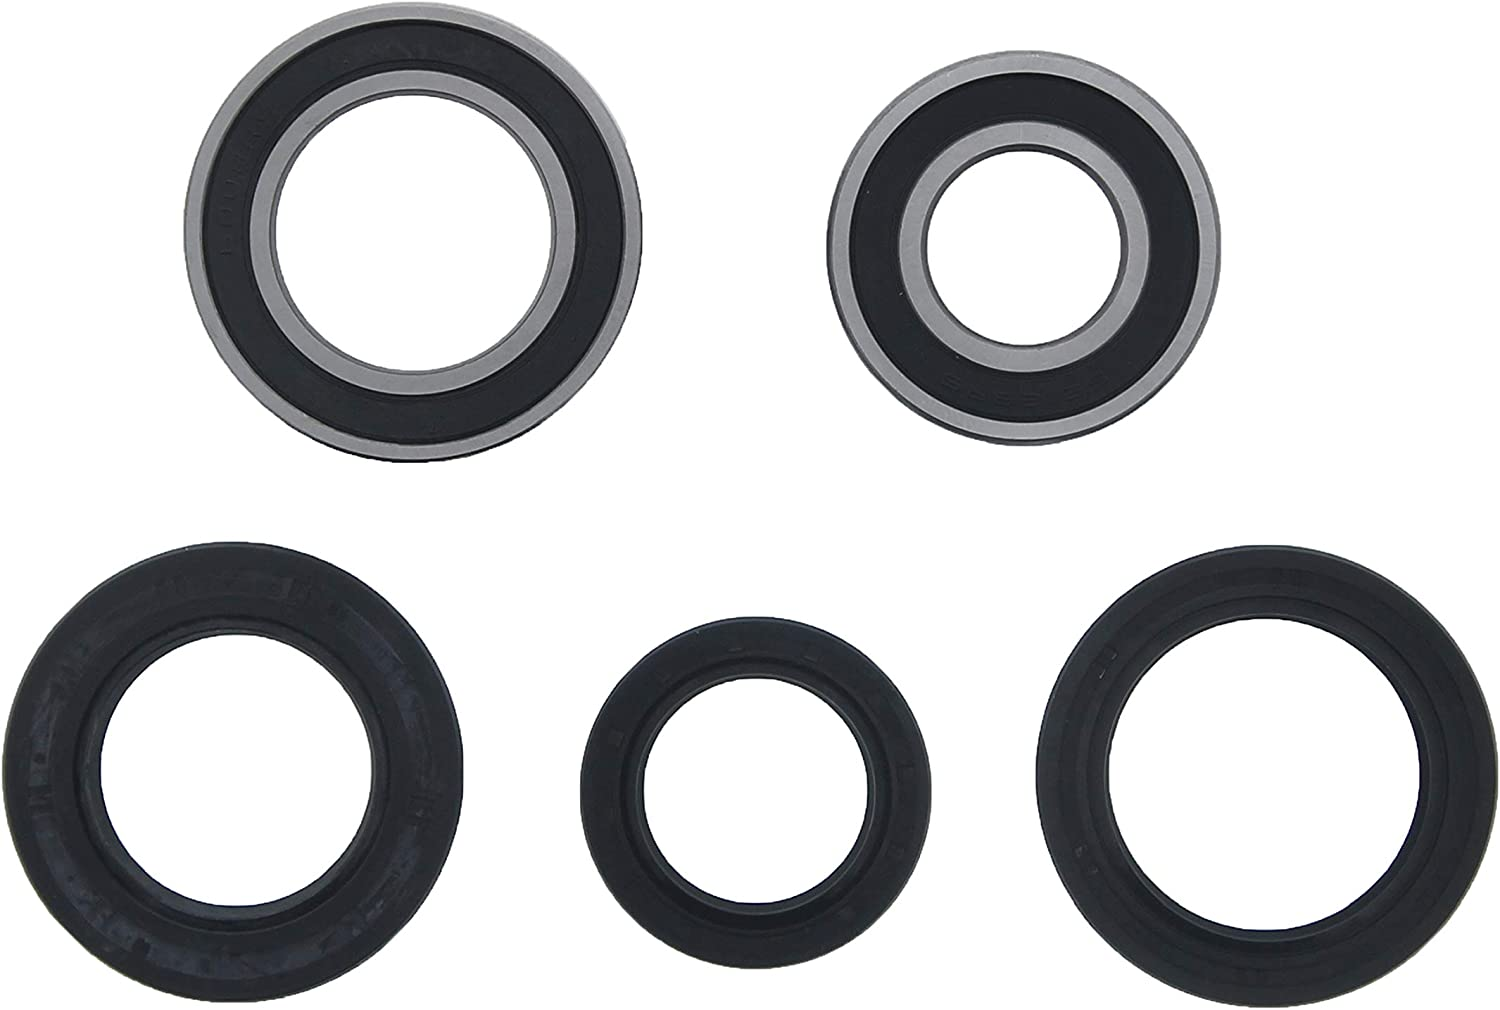 US Stock,Fast Shipping,ROADFAR Rear Wheel Axle Replacement Fits for 1992-2000 Yamaha Timberwolf 250